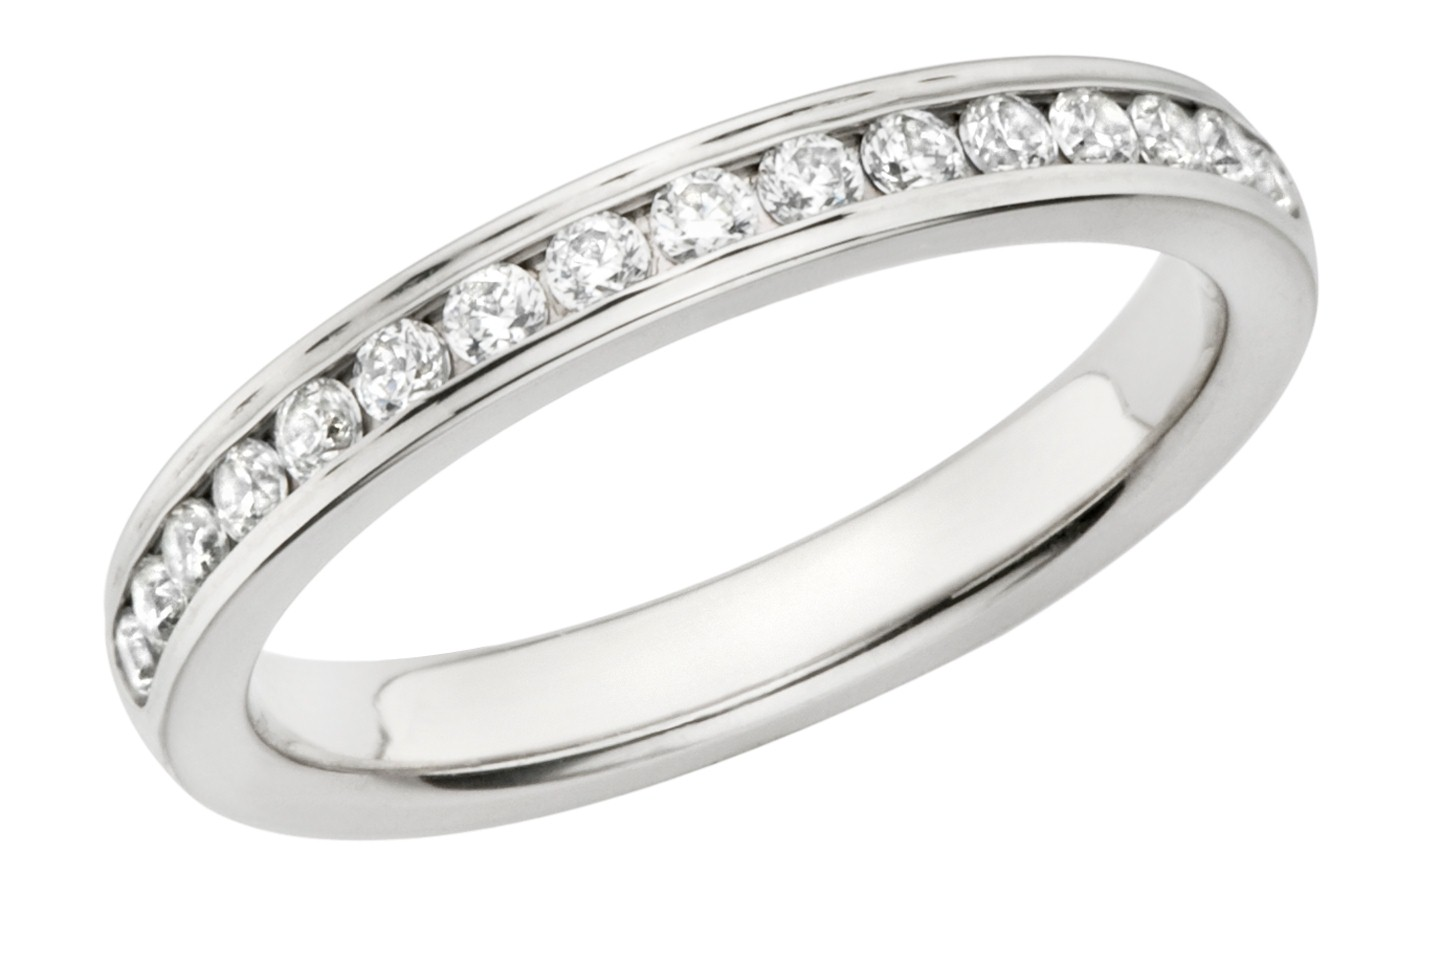 Lady's Diamond Wedding Band .10 CT. 14K White Gold 7.08g